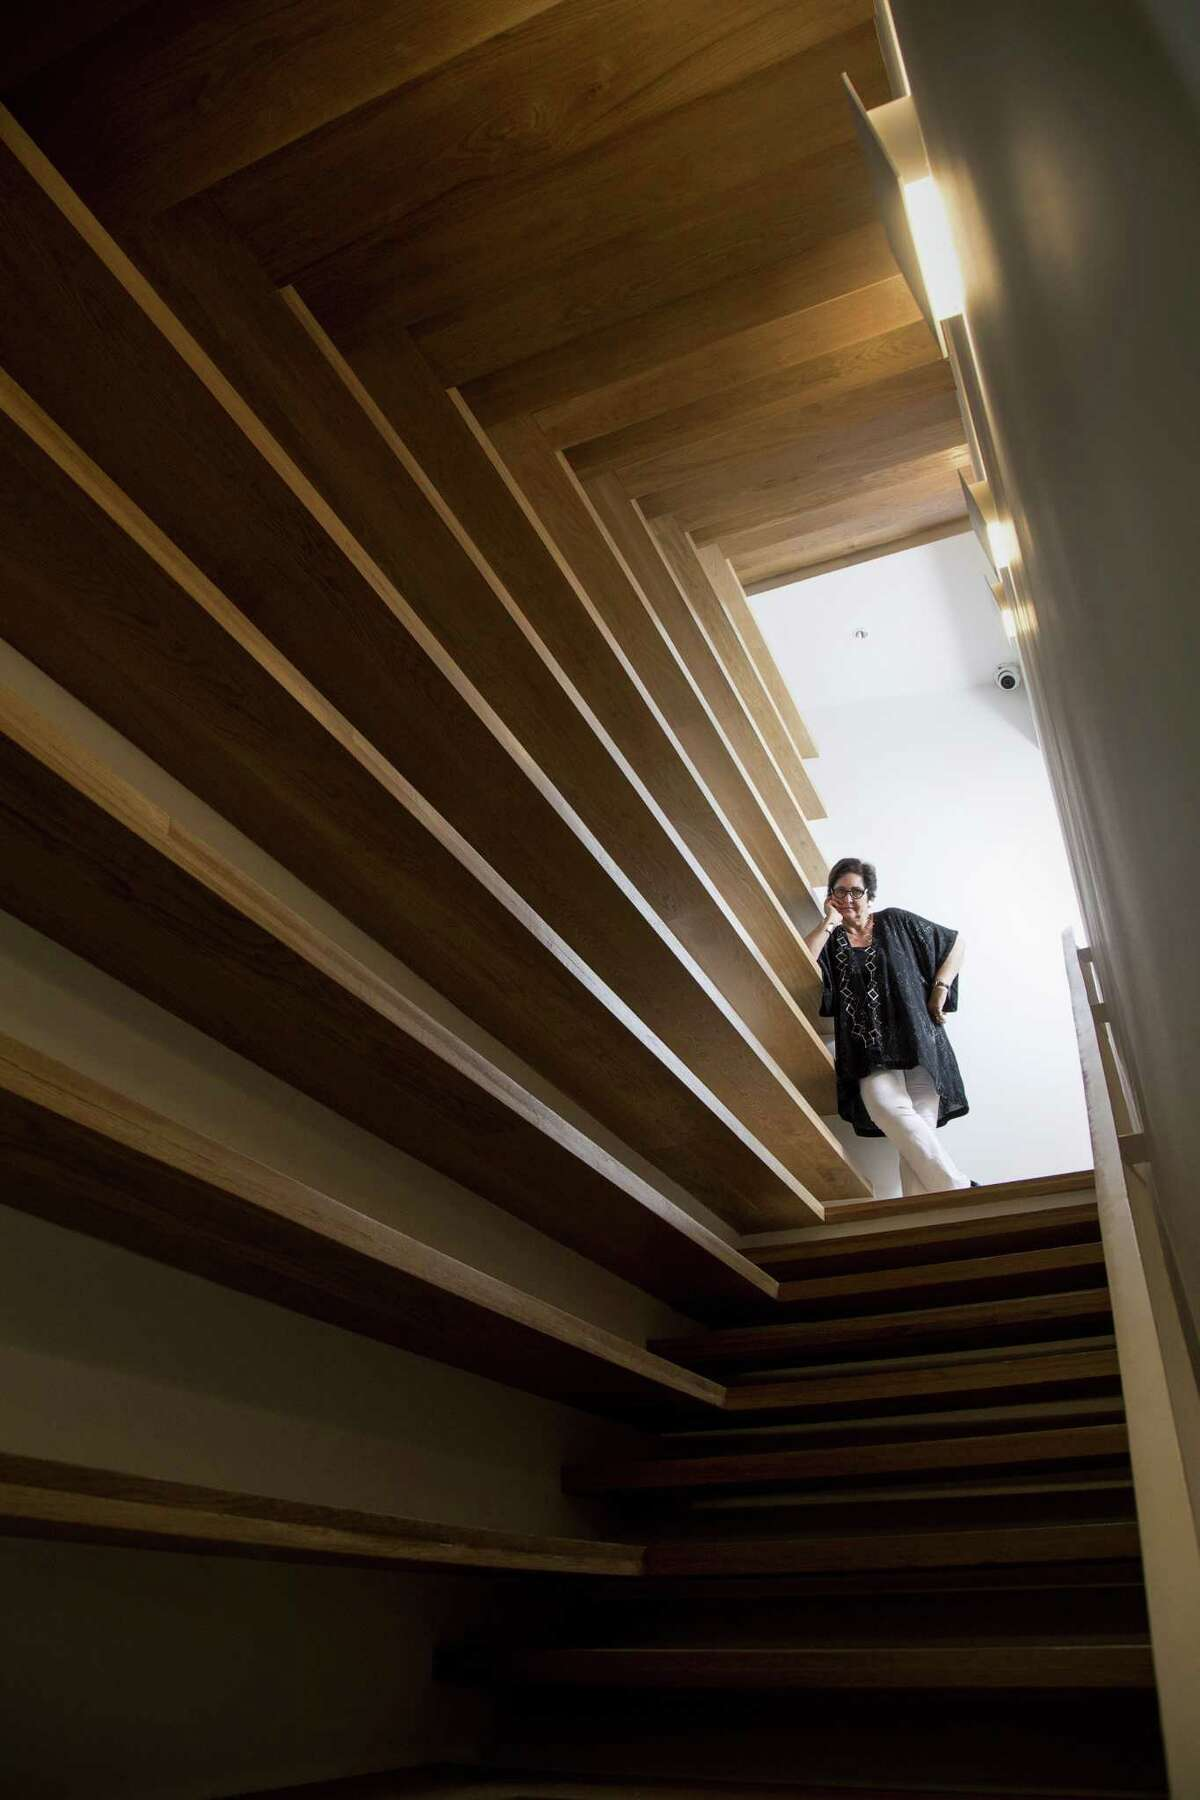 The soul of the building lies within the custom shelves that form two stairwells, where Angelini plans to install her 8,000-book research library.